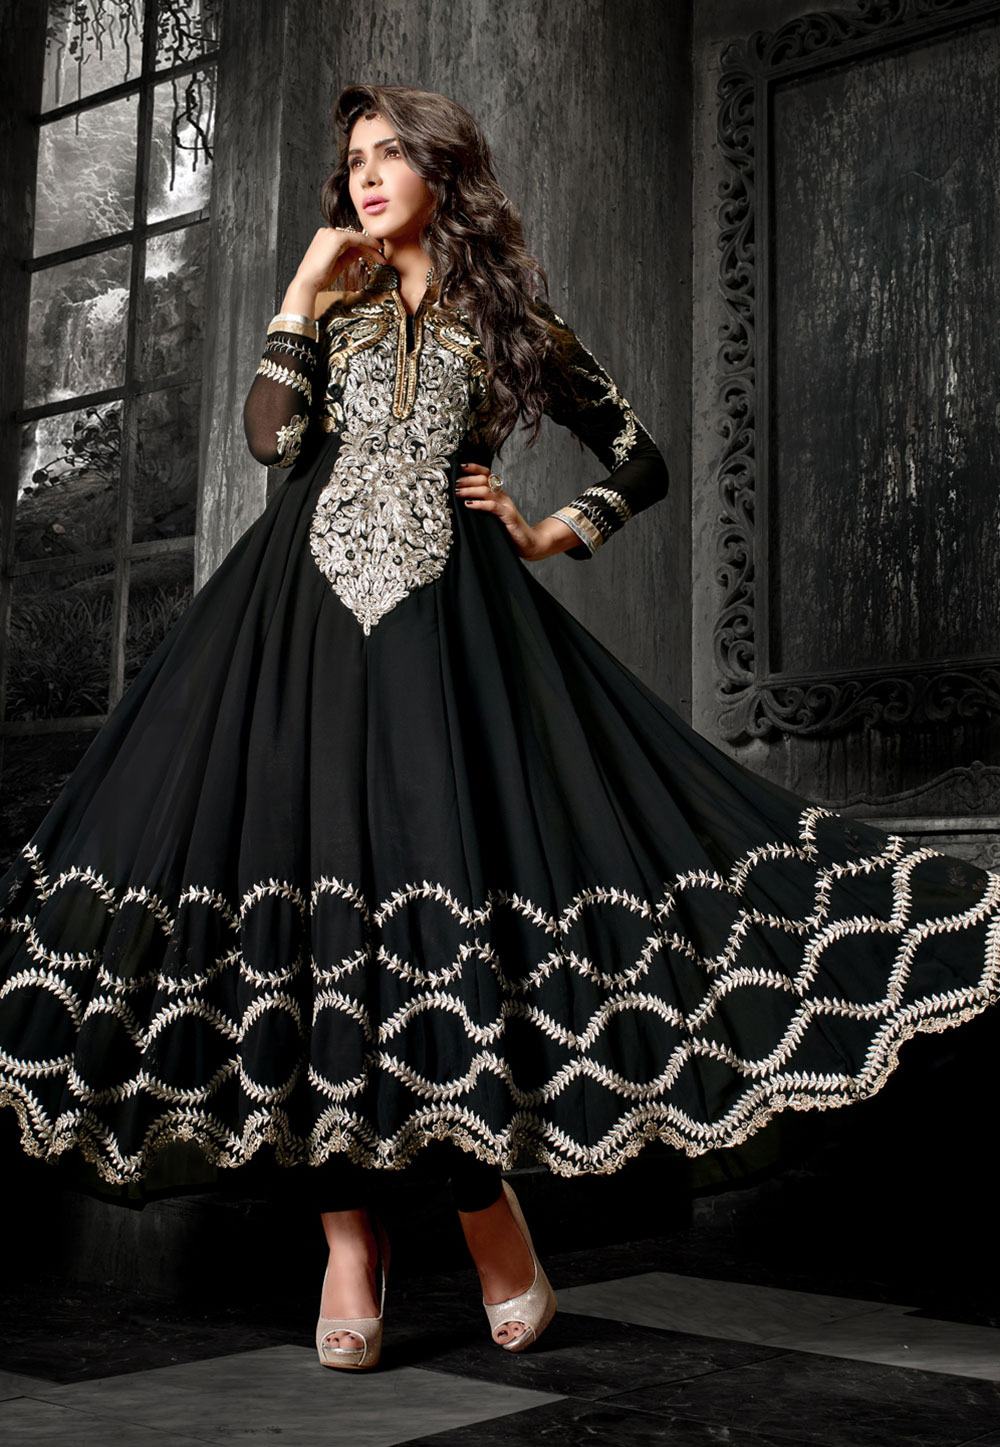 Indian fashion trend indian ethnic wear online indian clothing - Indian Fashion Trend Indian Ethnic Wear Online Indian